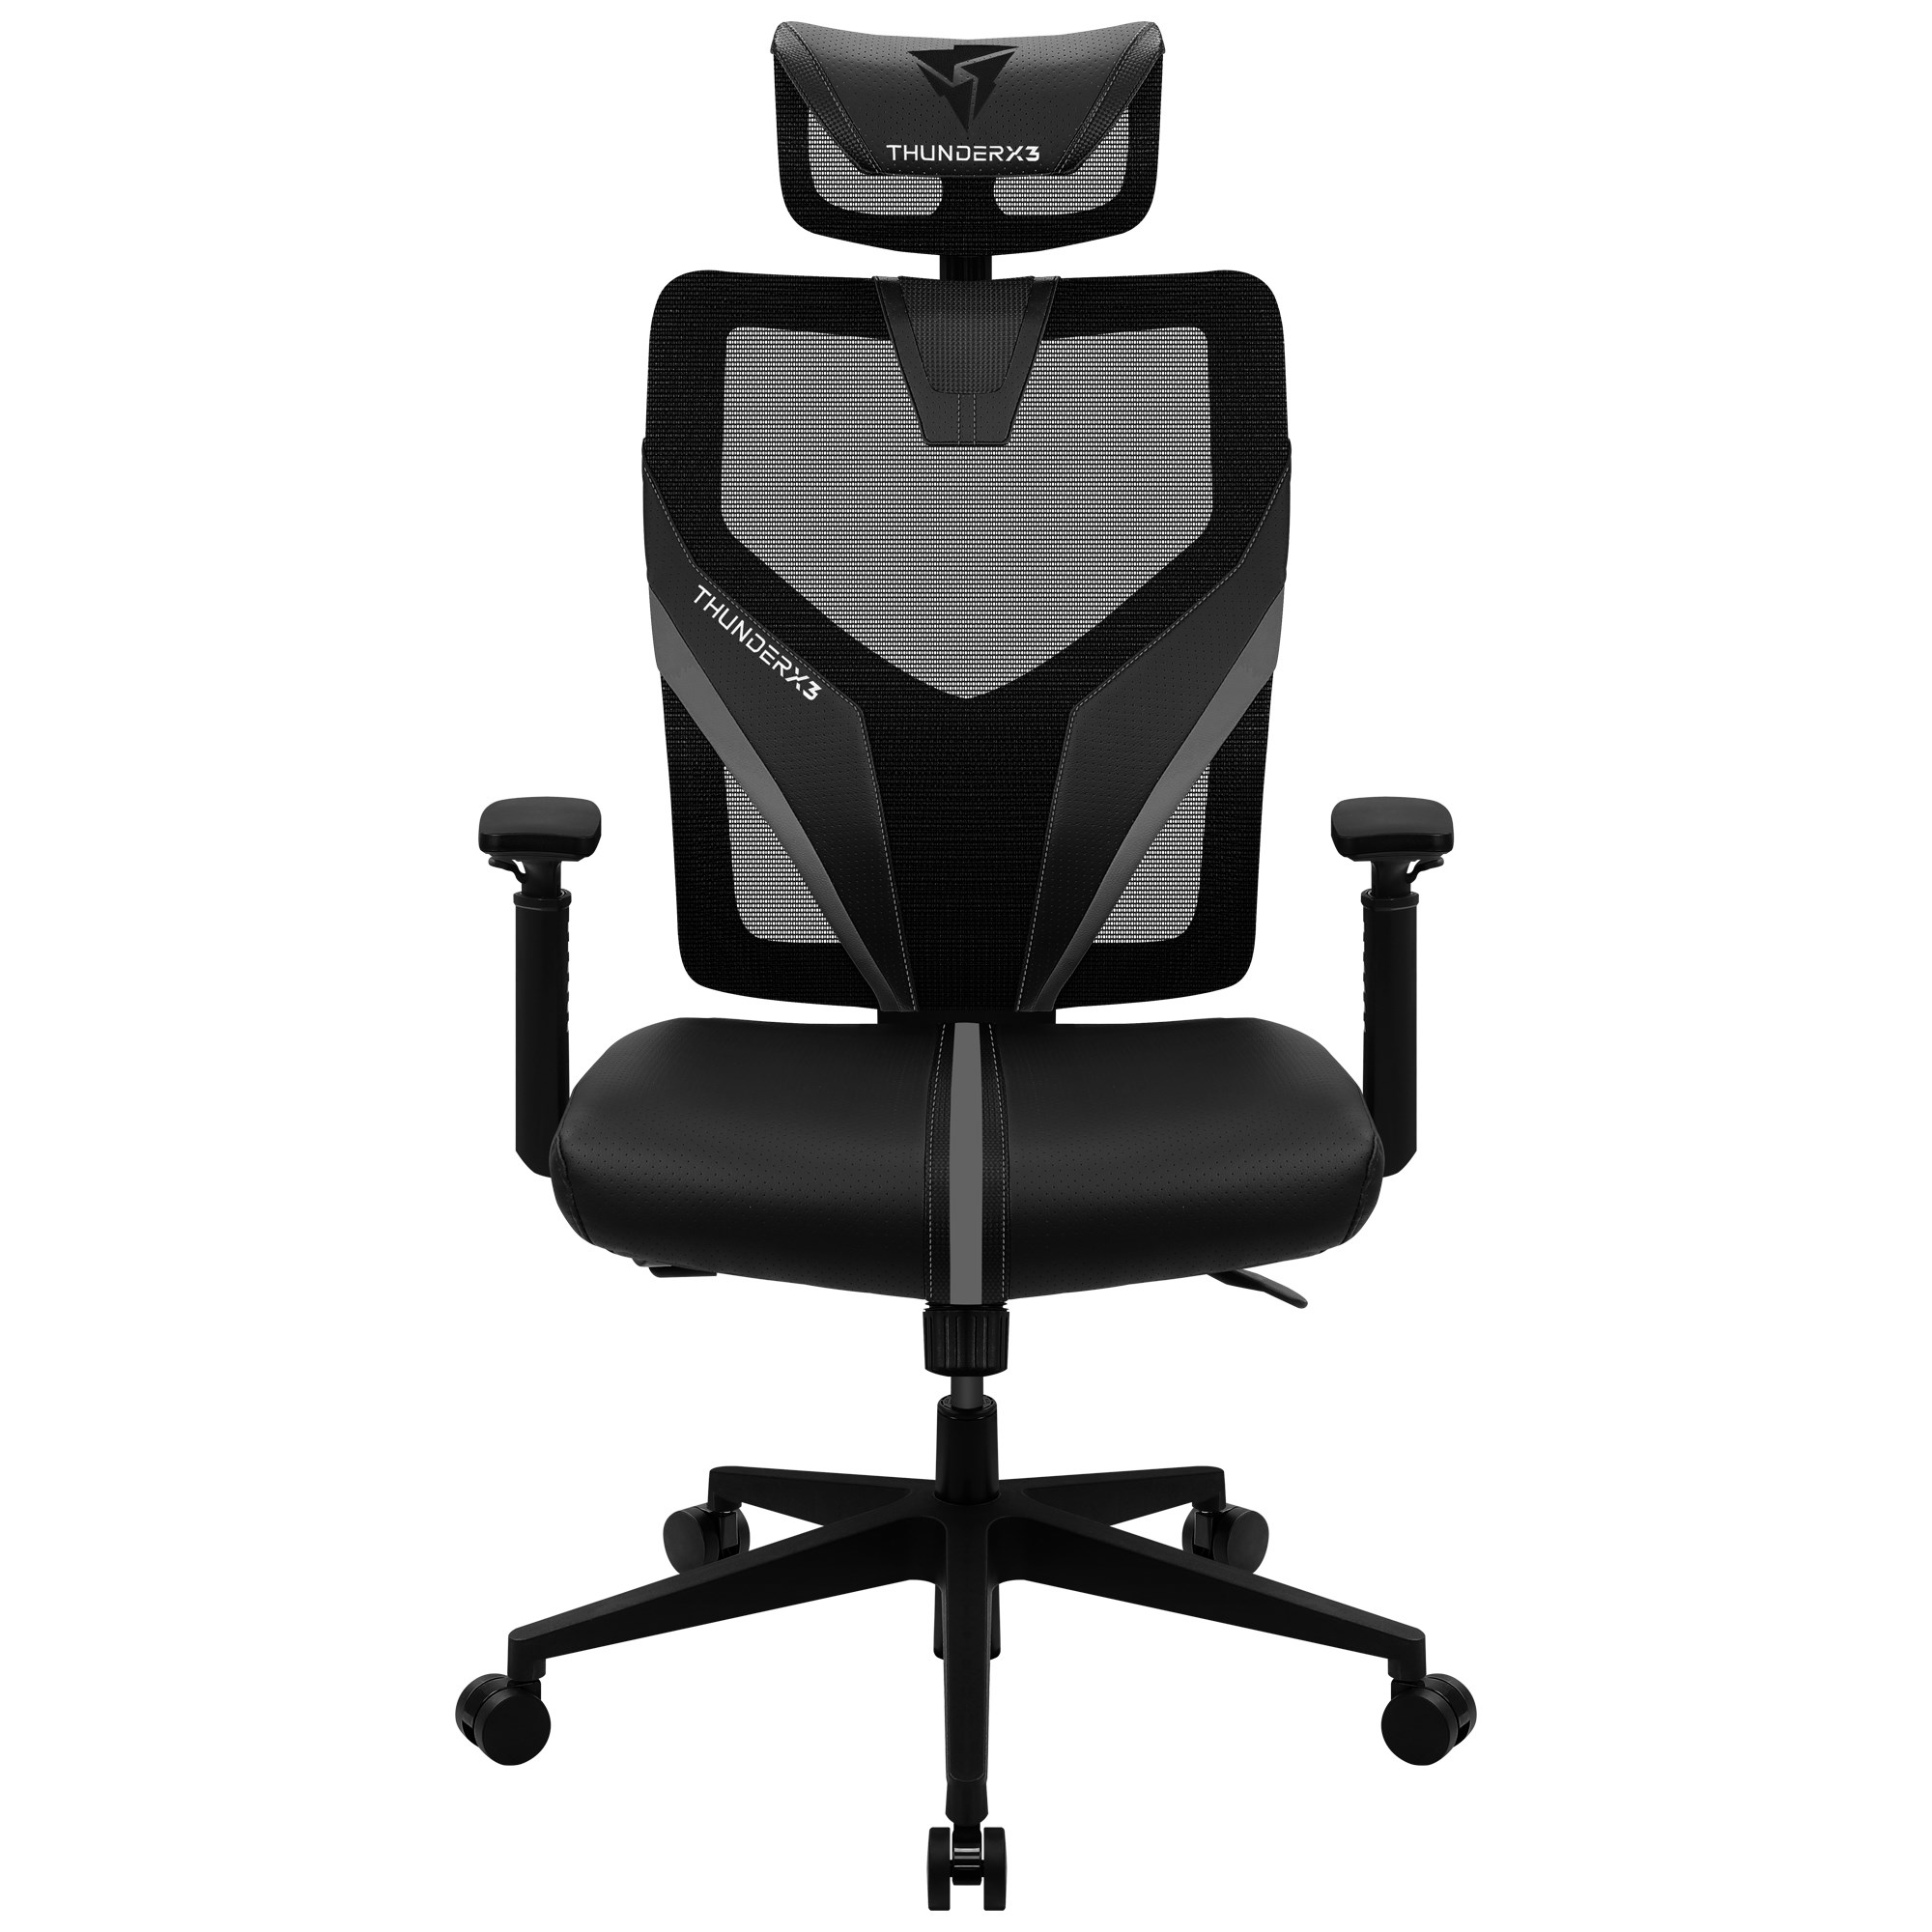 ThunderX3 Yama 1, Gaming Chair, Technology AIR, Desk Ergonomic And Breathable, Cyan